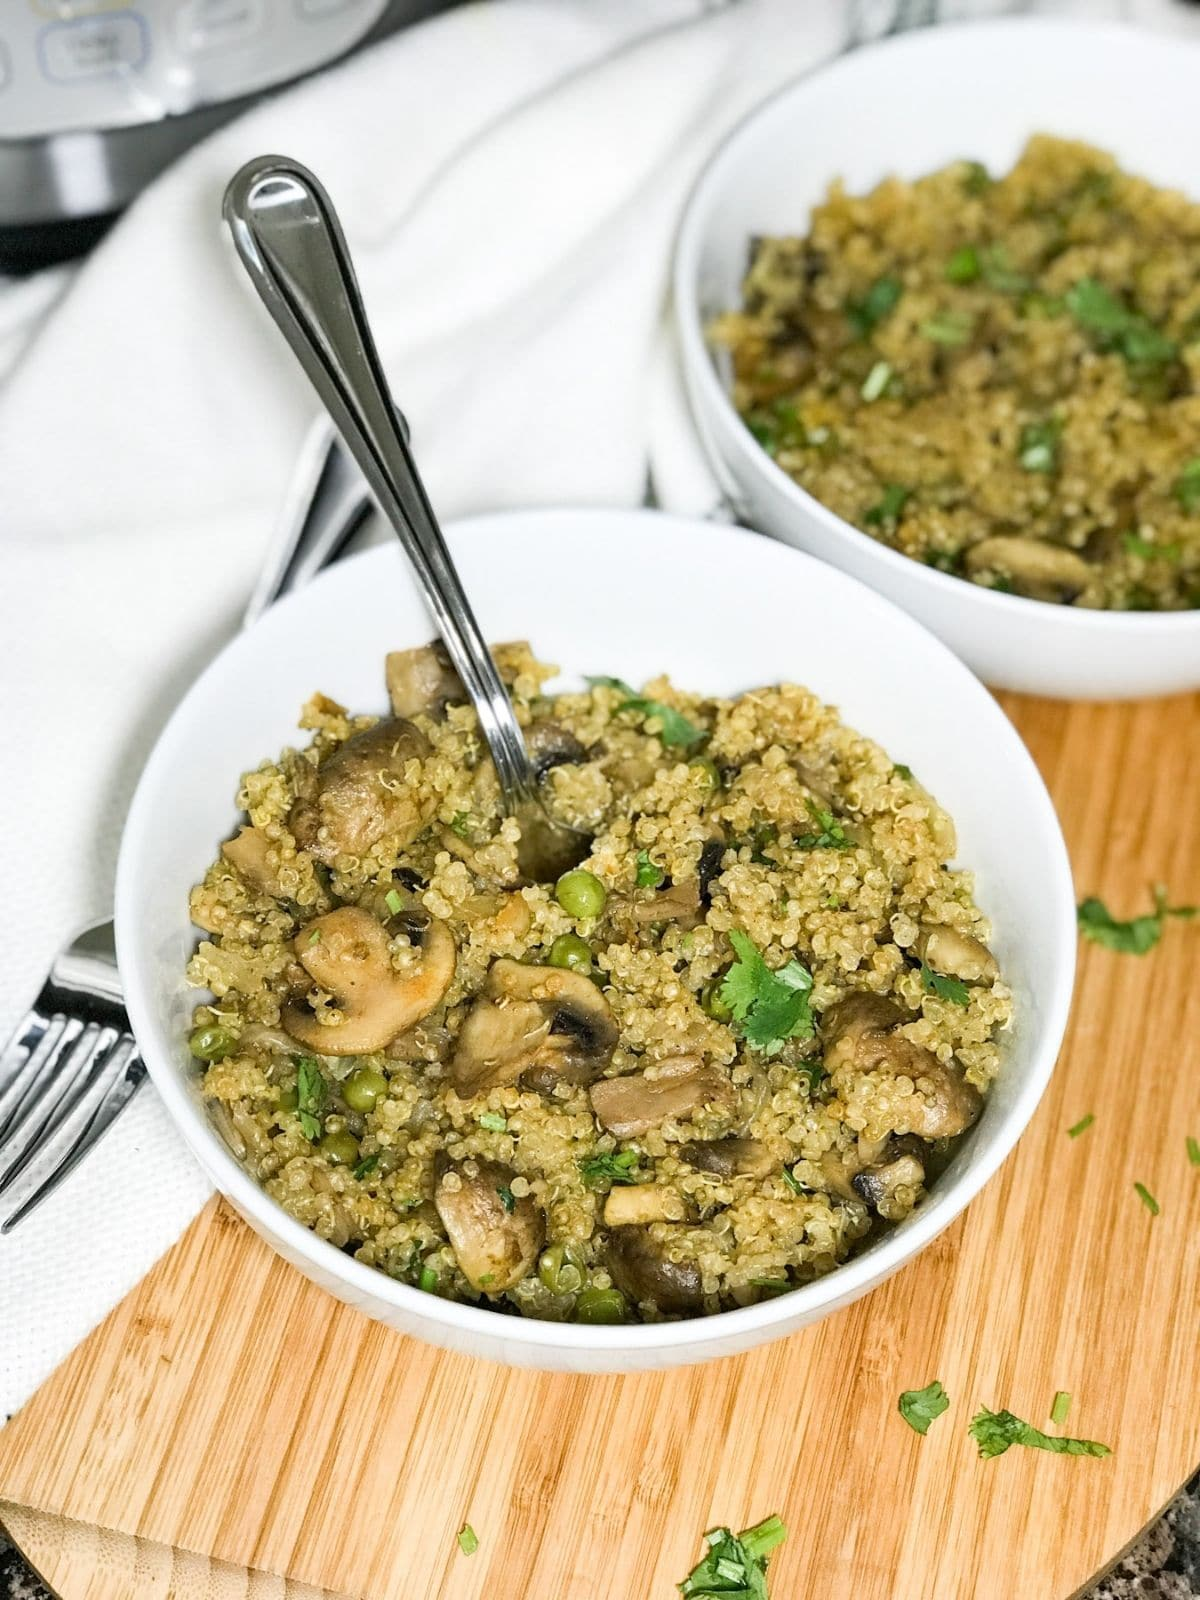 A bowl with mushroom quinoa is on the table